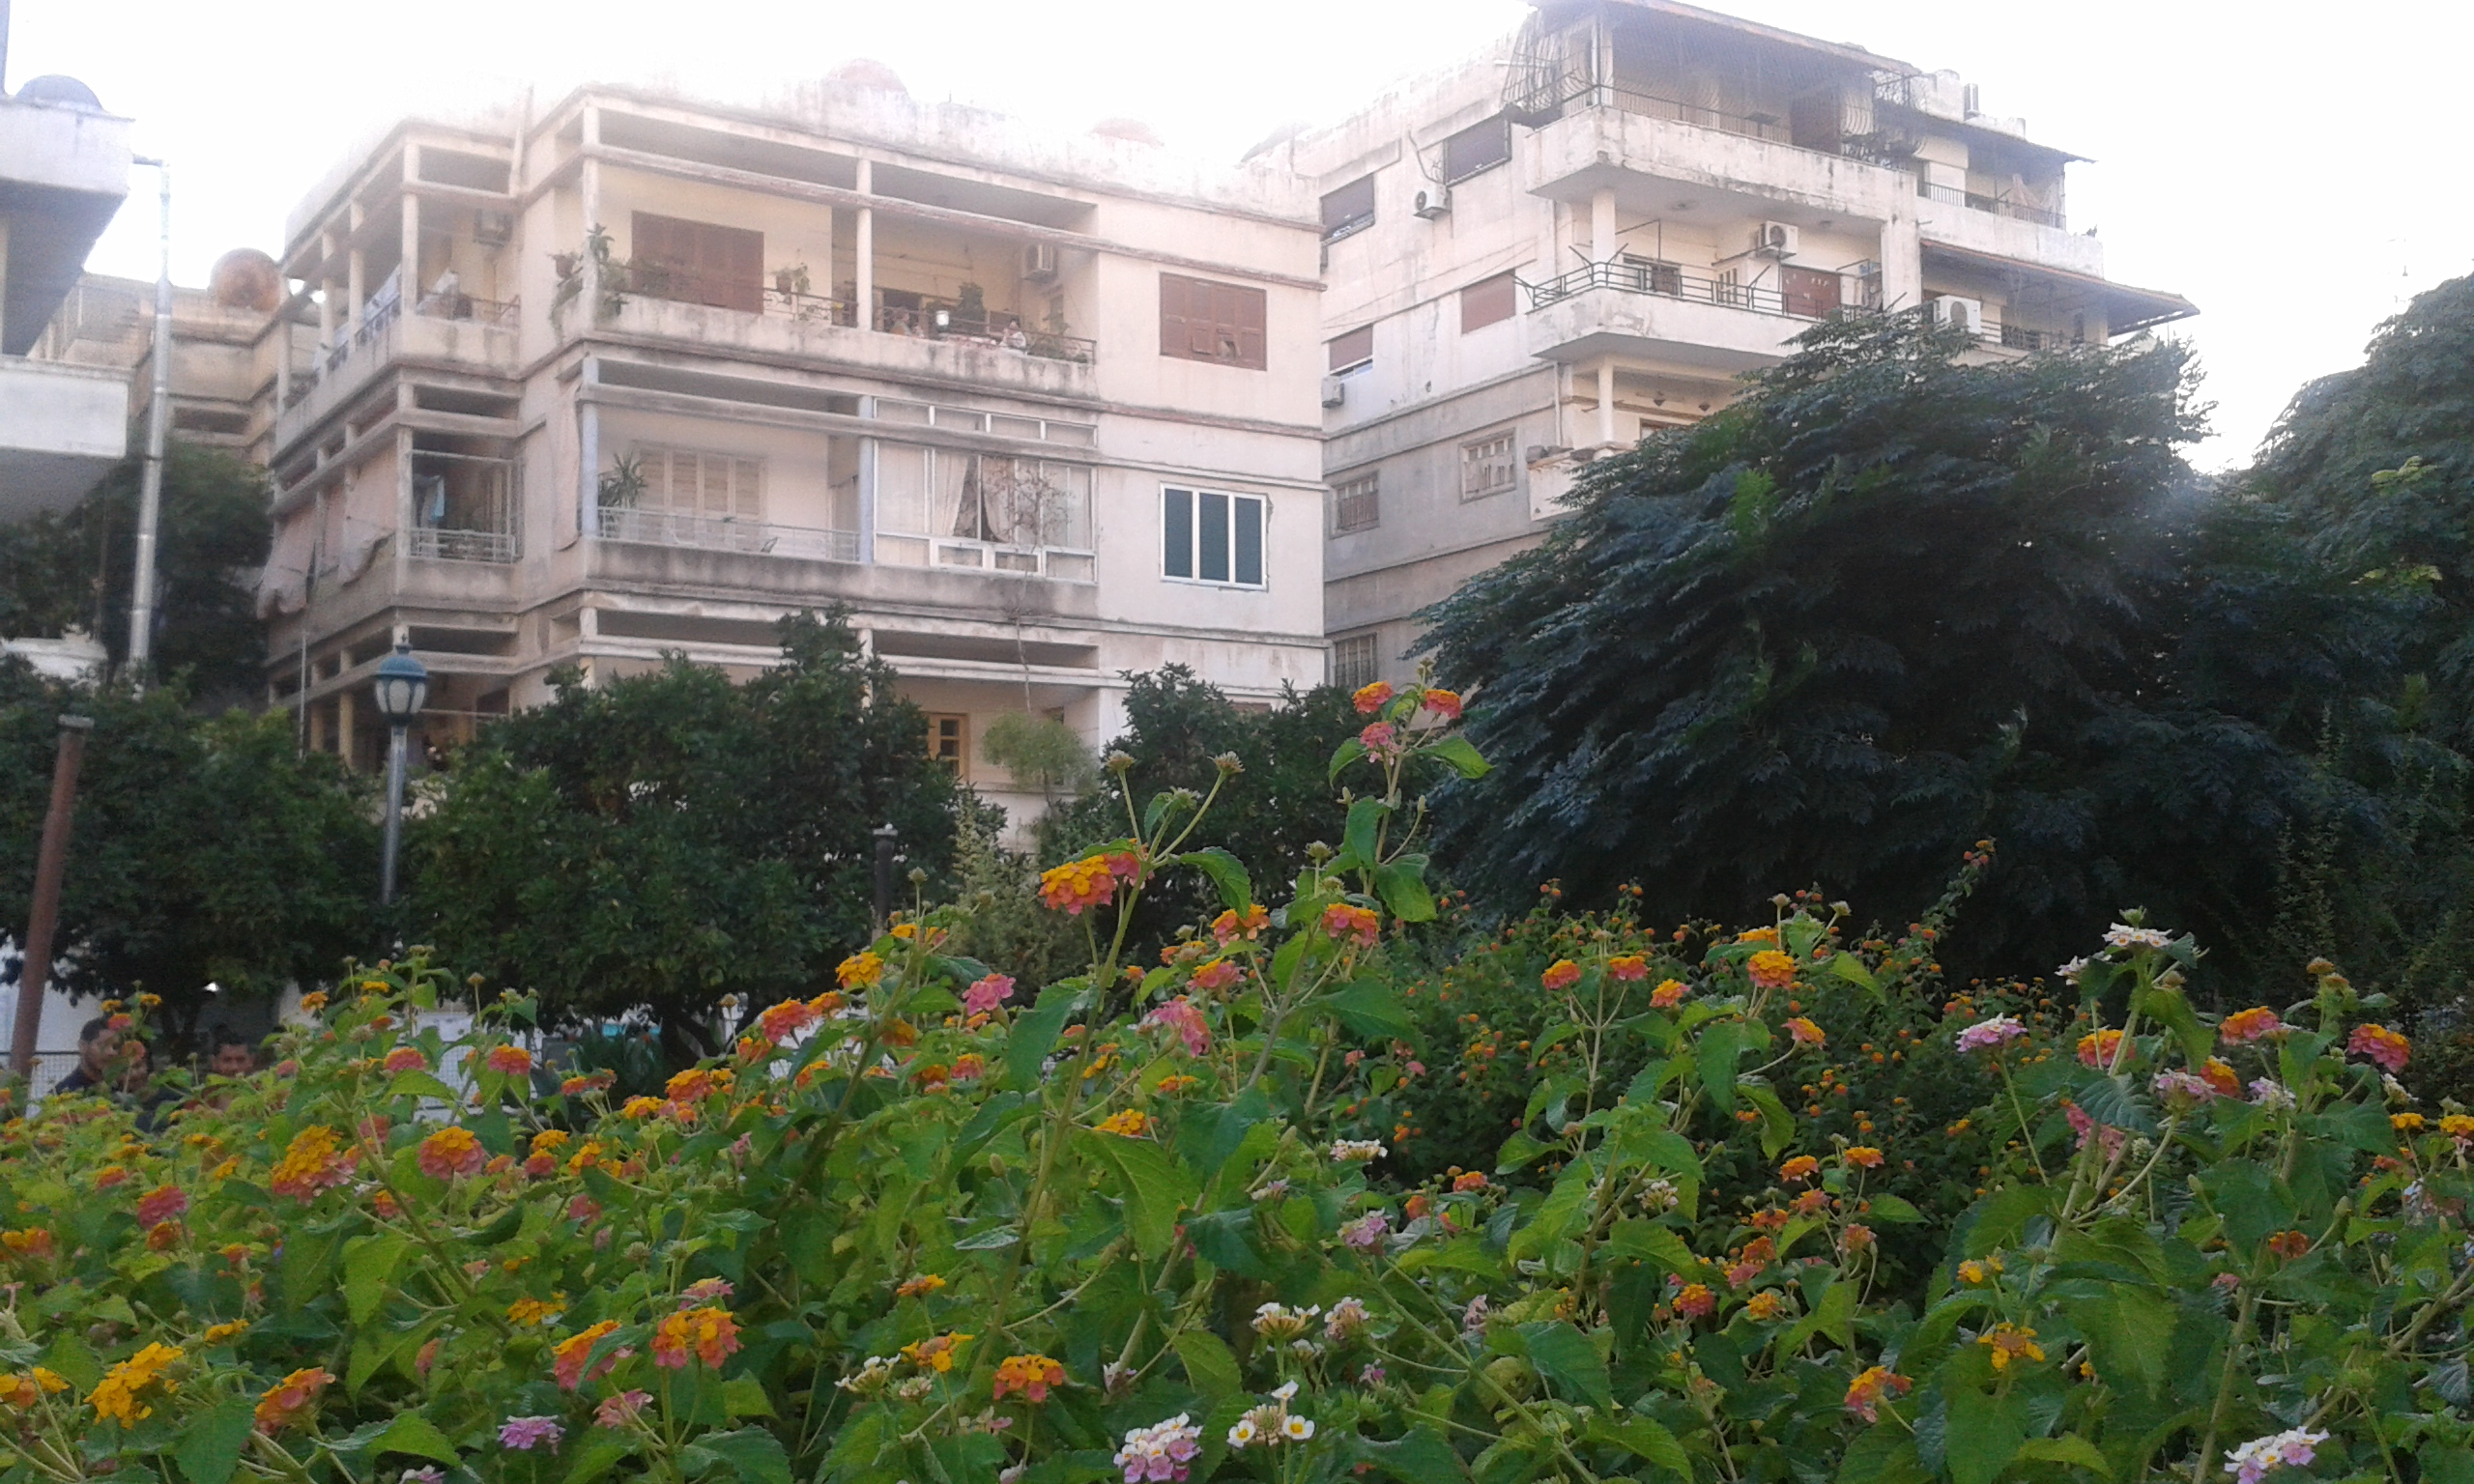 File:Nature Gardens In Syria 13